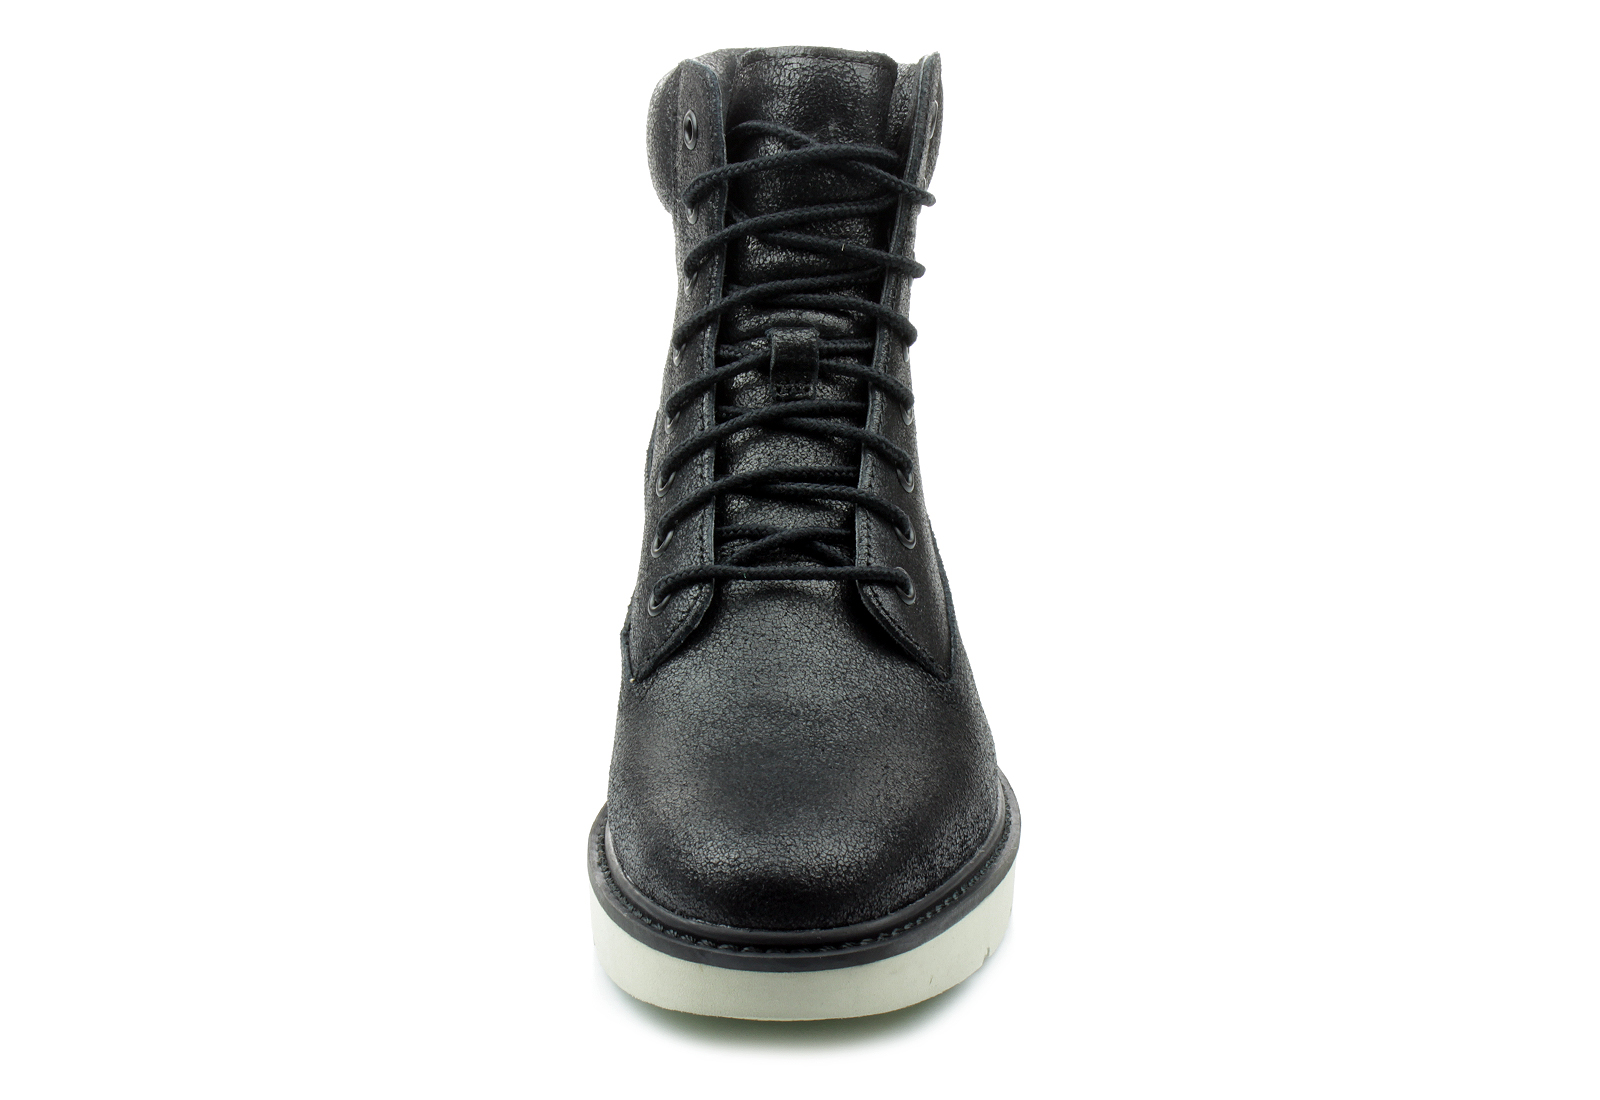 Timberland Topánky - Kenniston 6in Lace - a1iry-blk - Tenisky ... 6e693649a7c